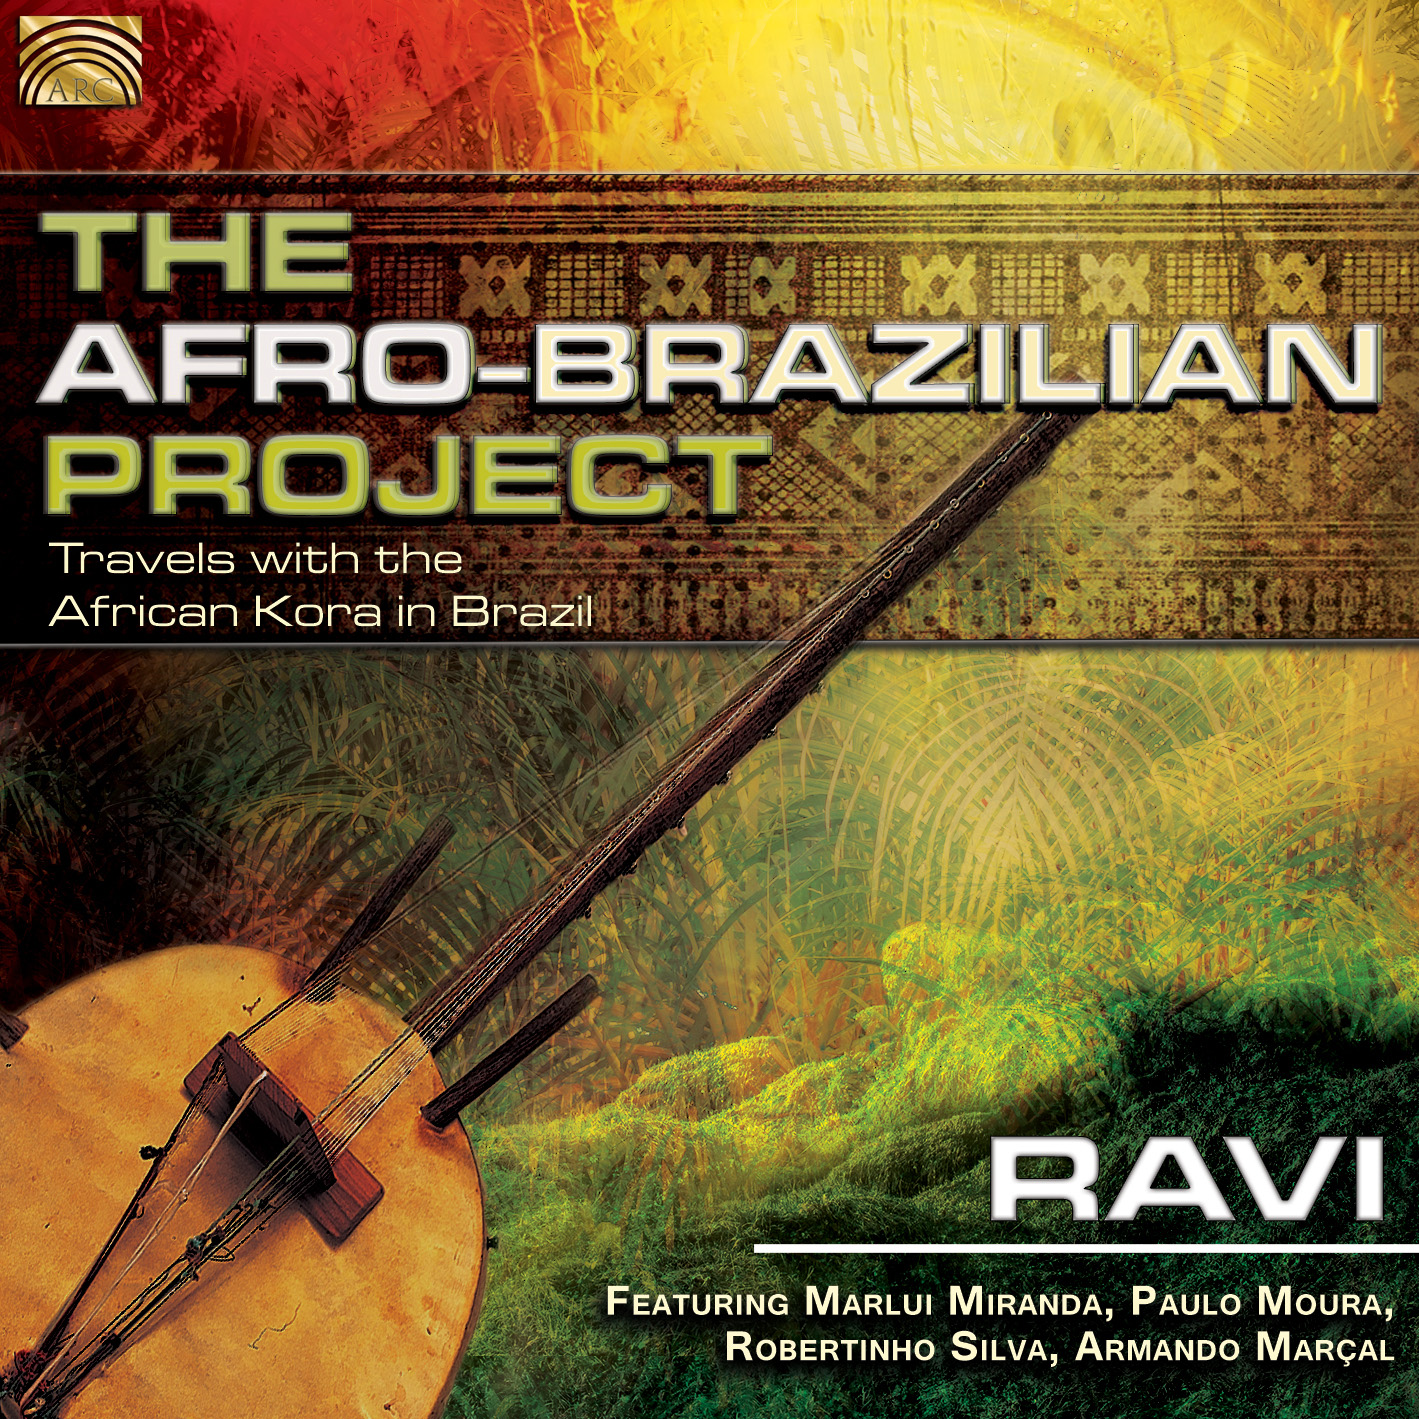 The Afro Brazilian Project: Travels with the African Kora in Brazil